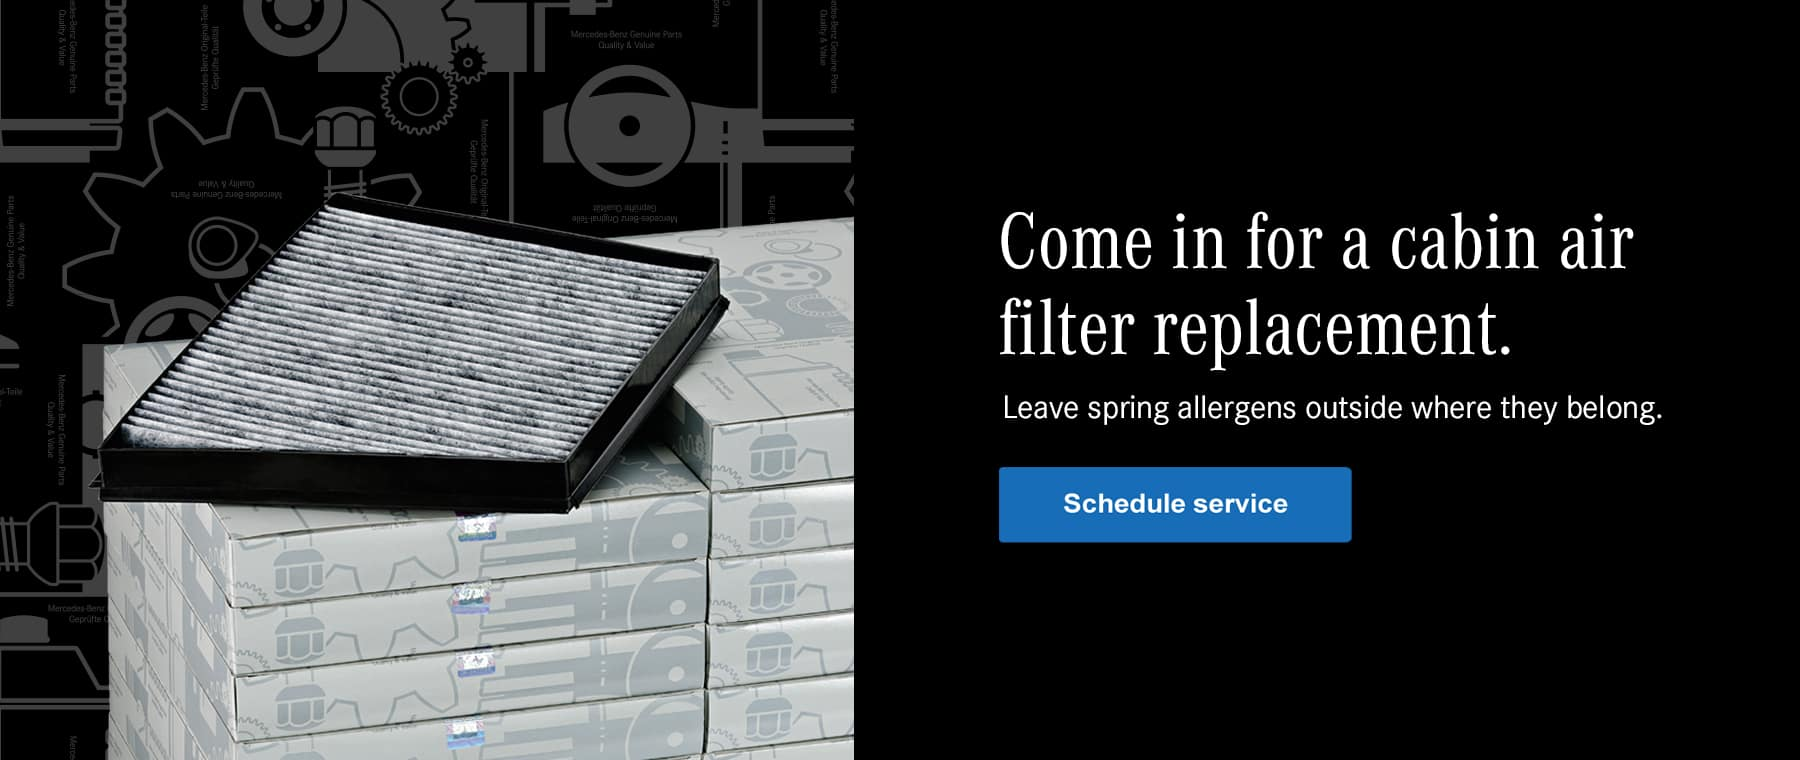 Mercedes-Benz filter replacement services